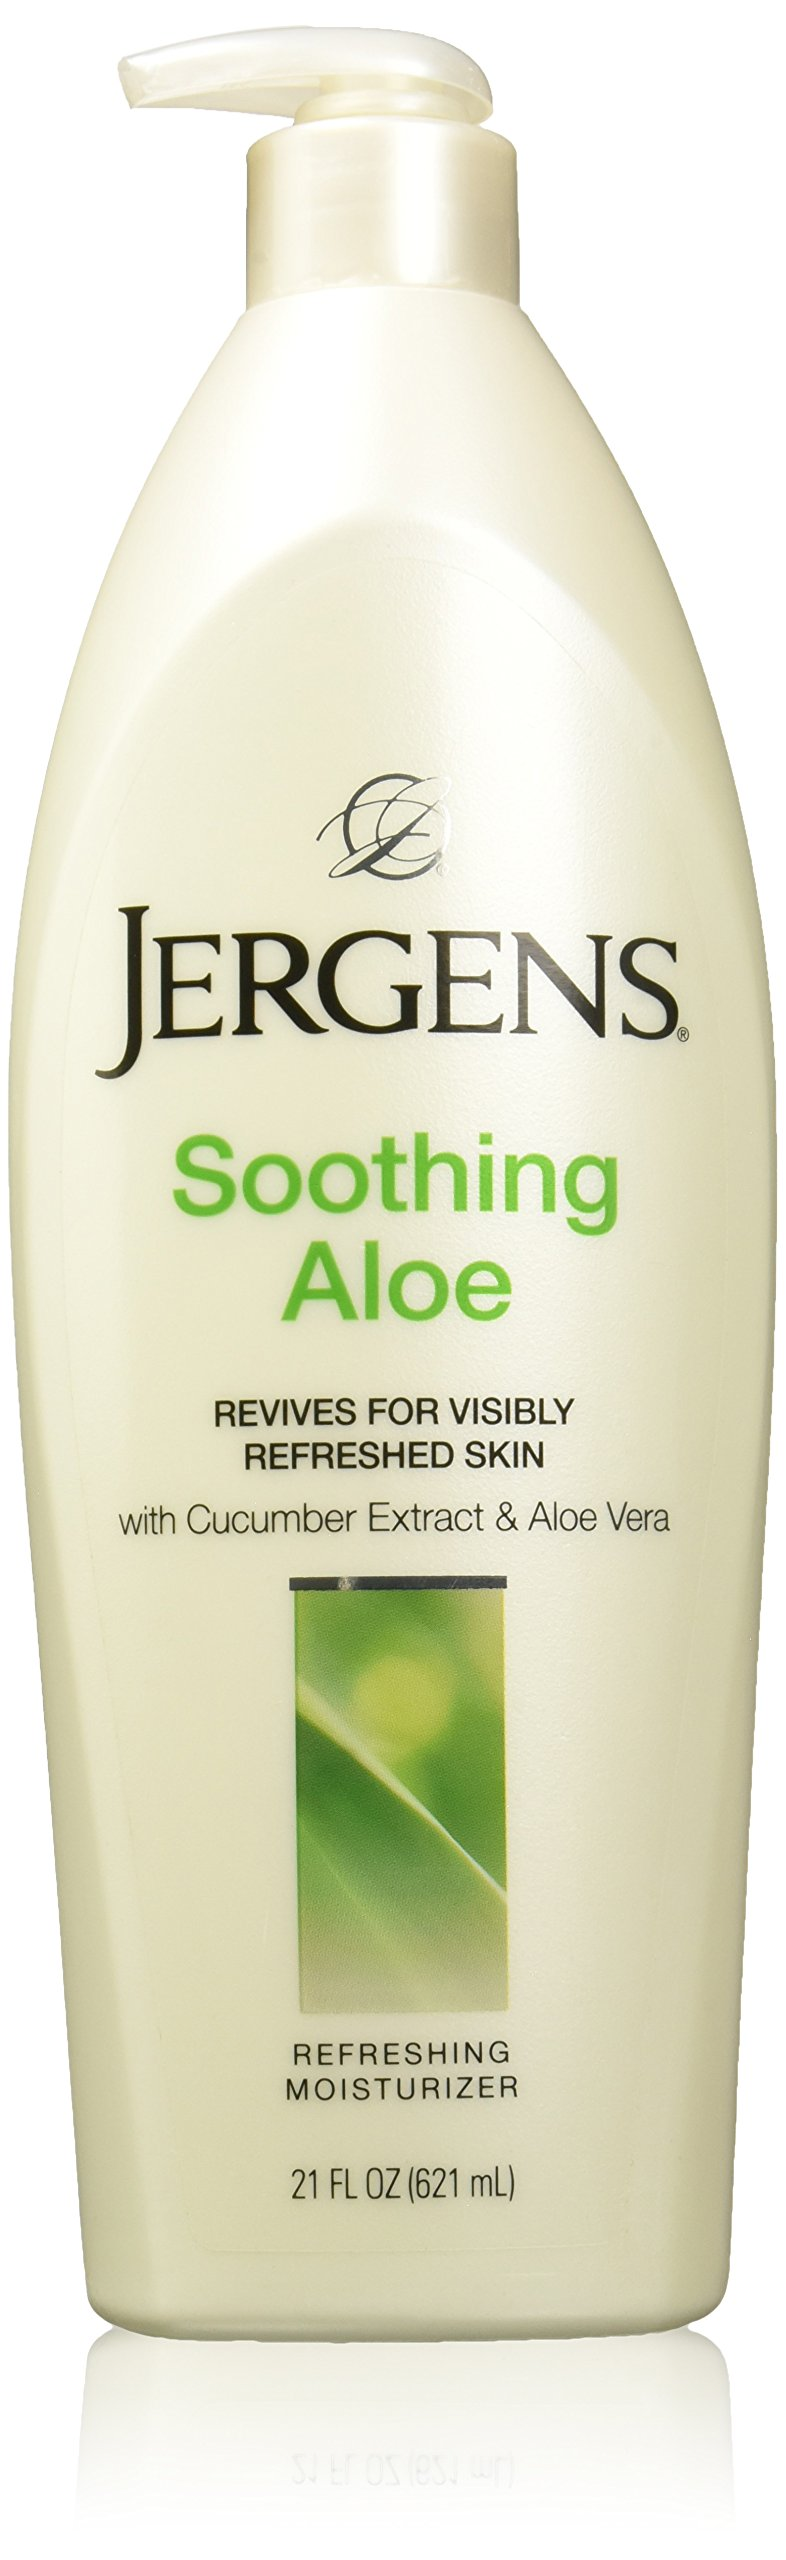 Jergens Shea Butter Deep Conditioning Moisturizer 265 Twin Pack Vaseline Hw Perfect 10 Pj 400ml Soothing Aloe Refreshing 21 Ounces